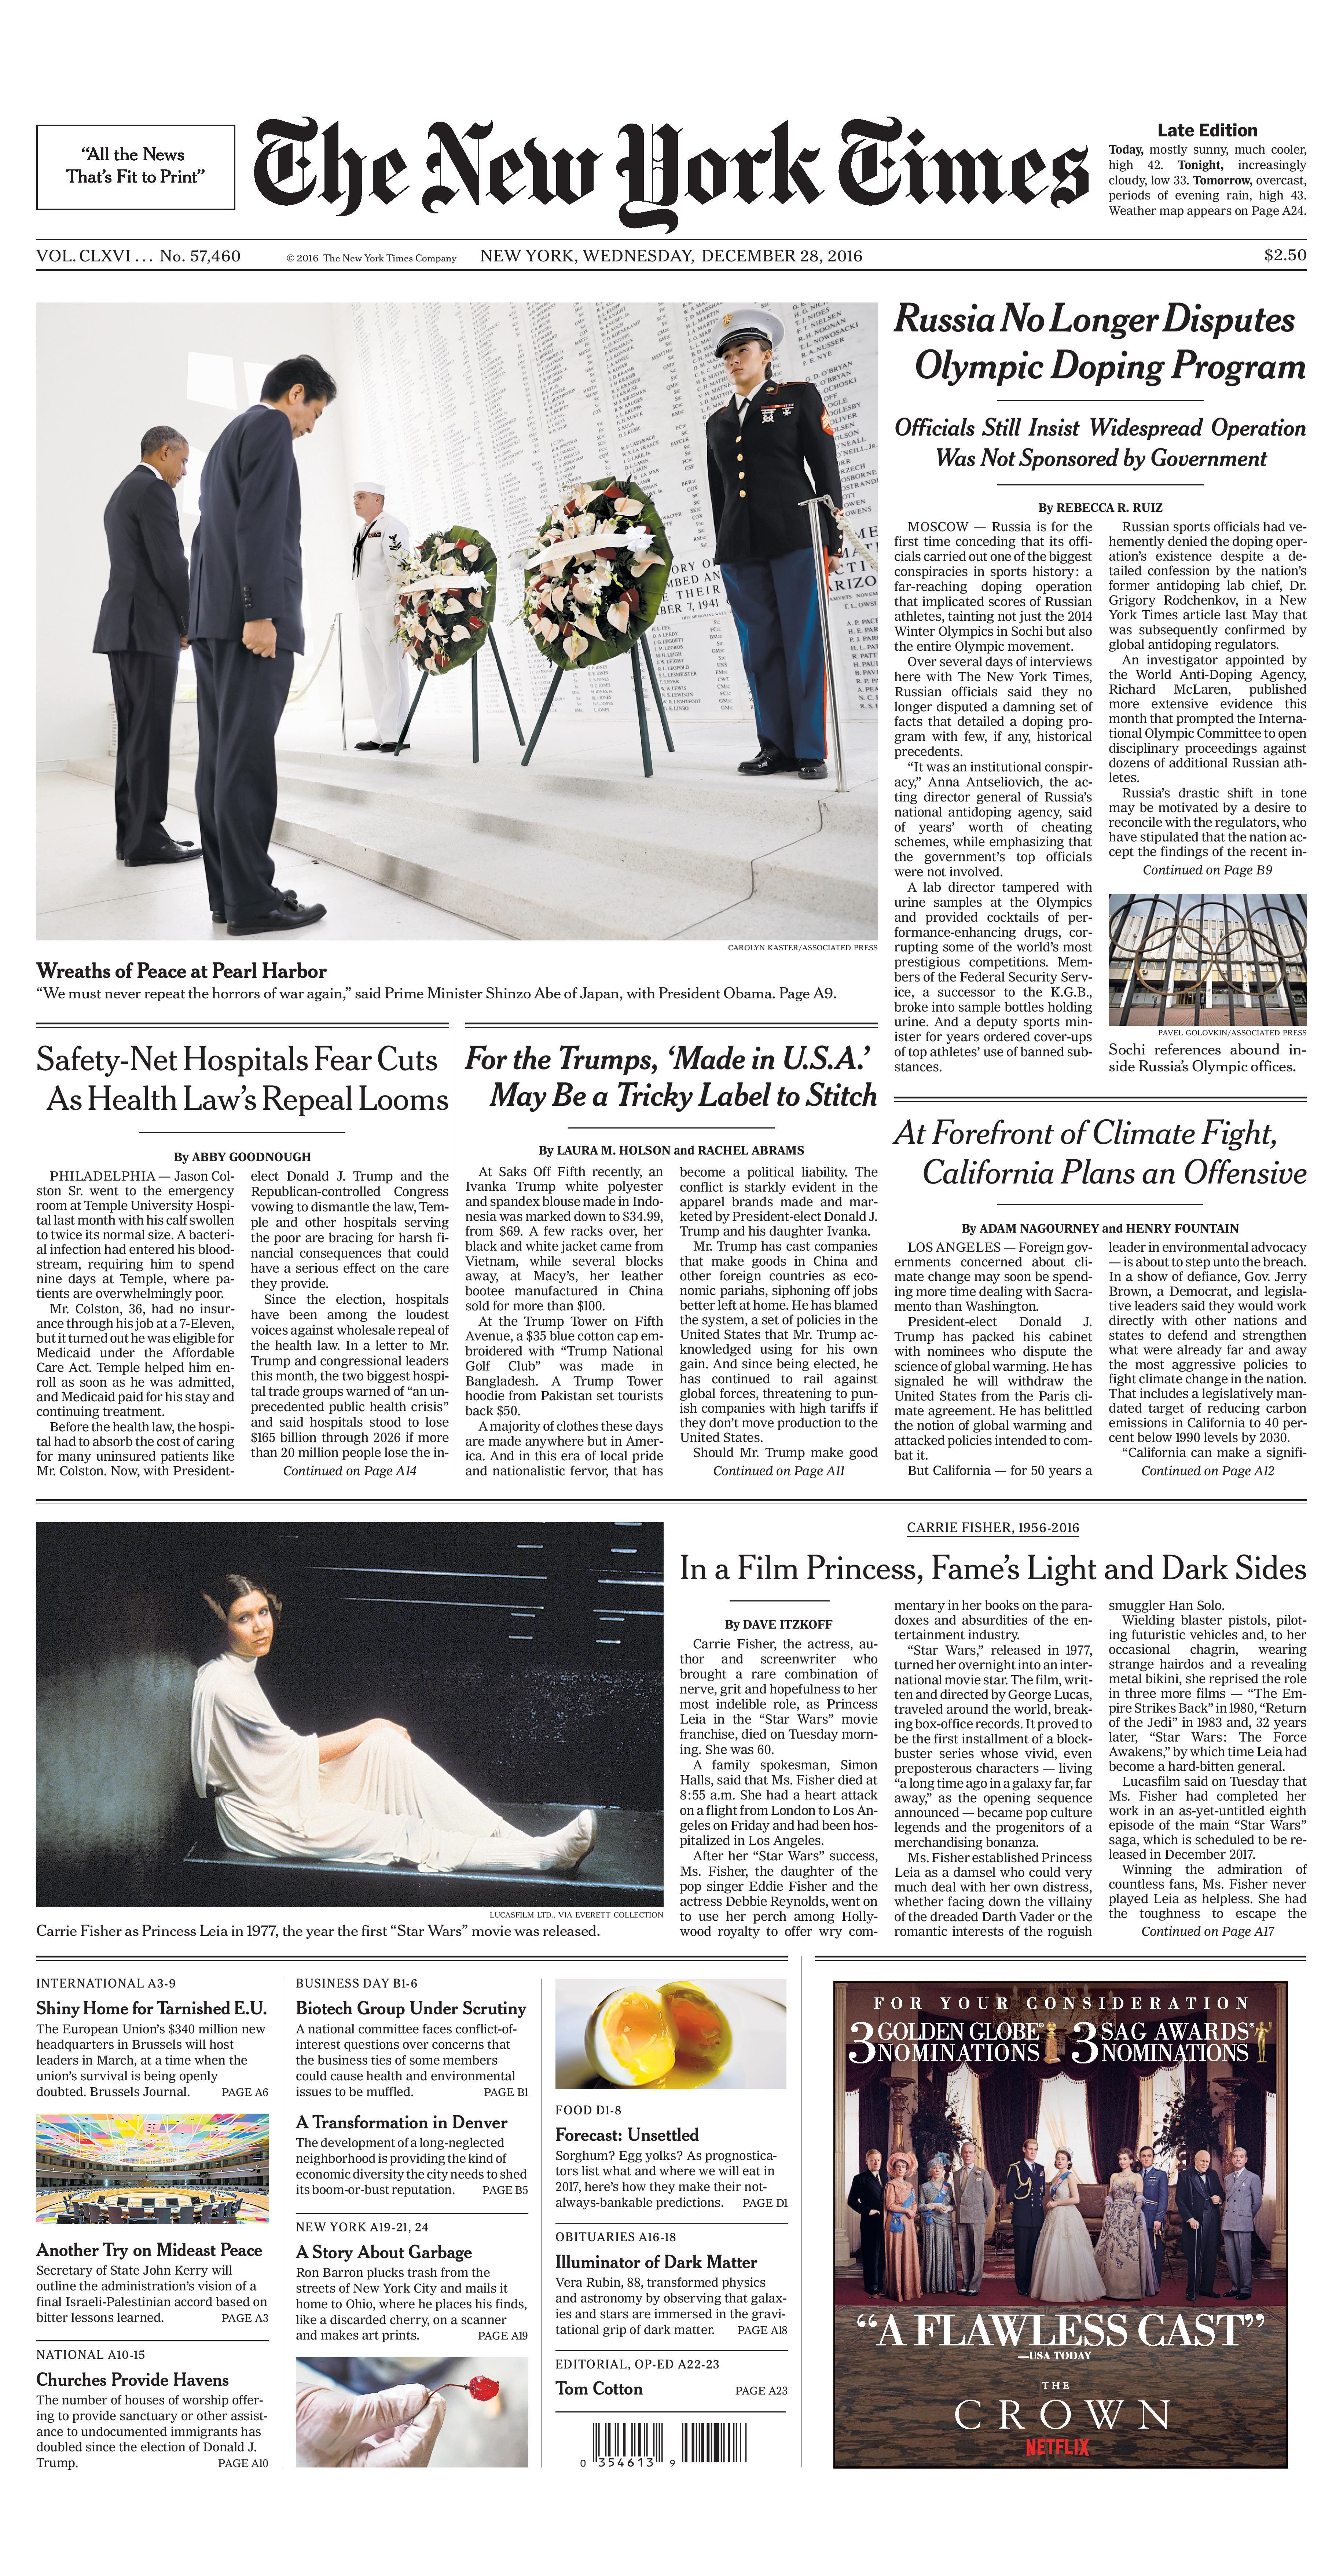 The New York Times Front Page